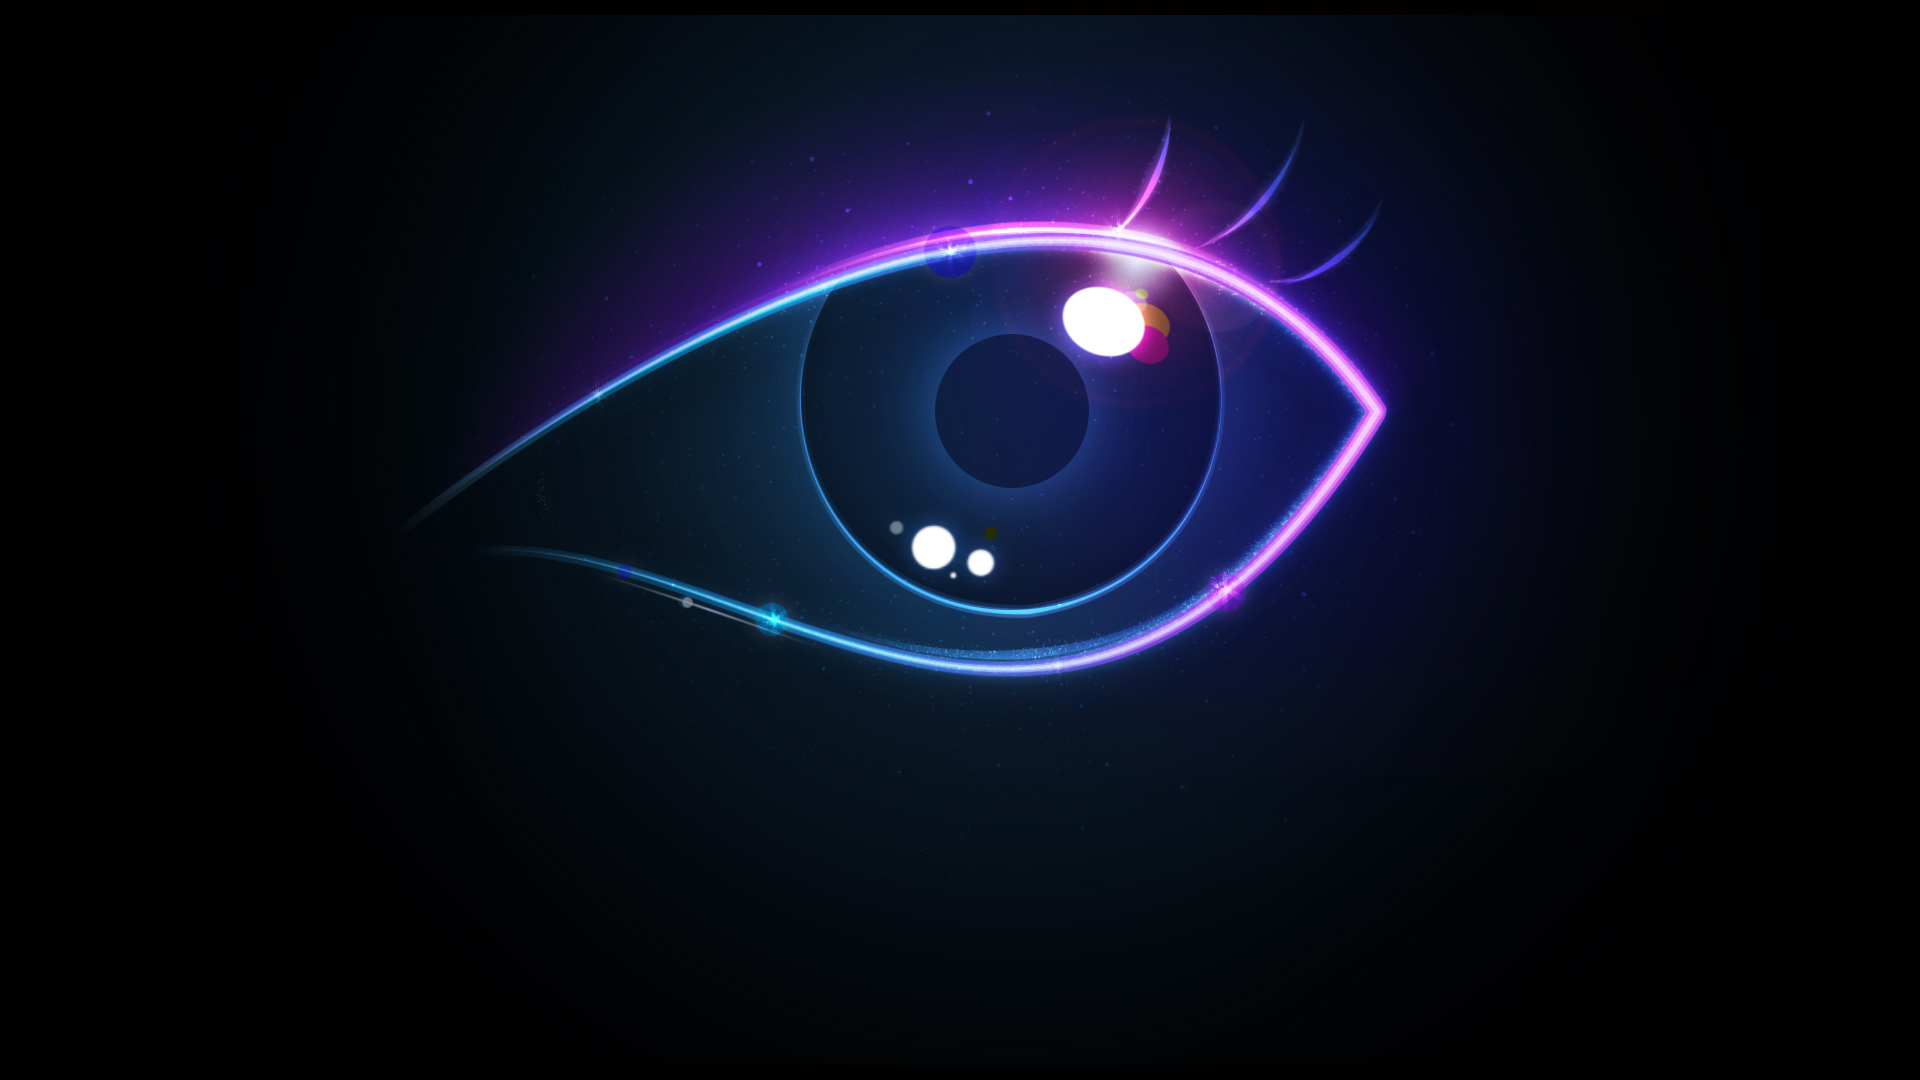 Creative Colorful Eye 529.76 Kb